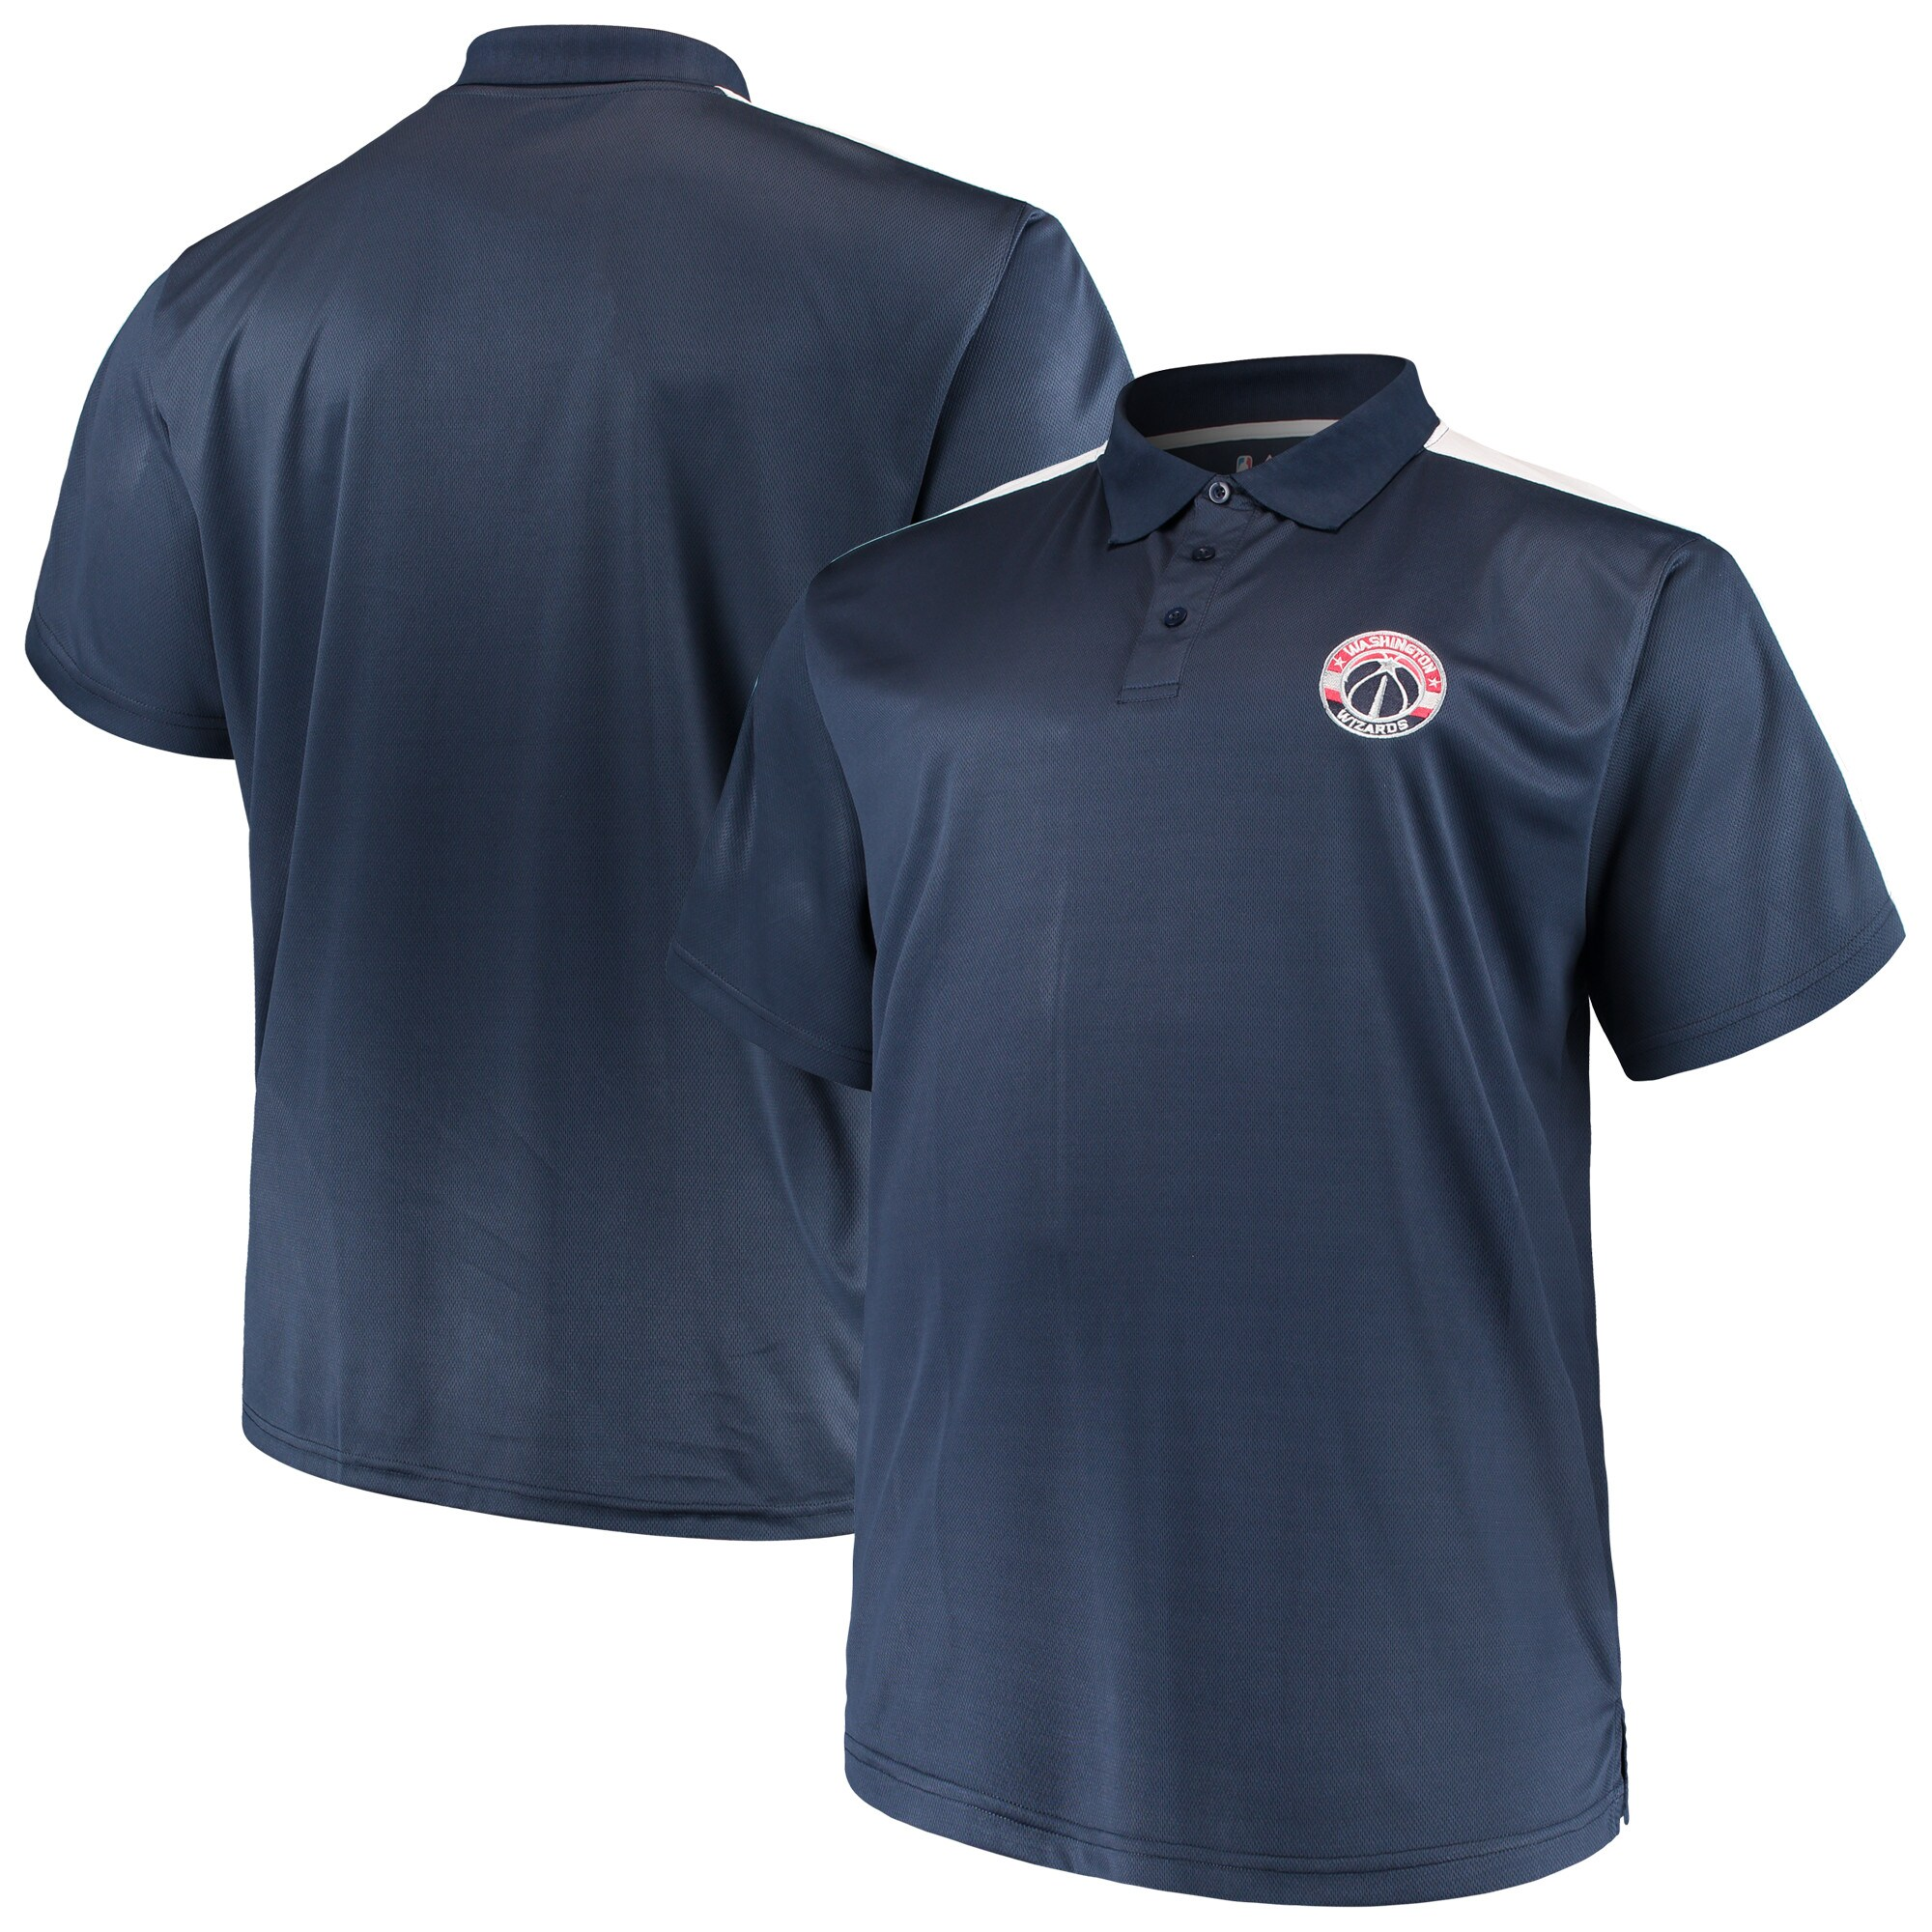 Washington Wizards Majestic Big & Tall Birdseye Polo - Navy/White